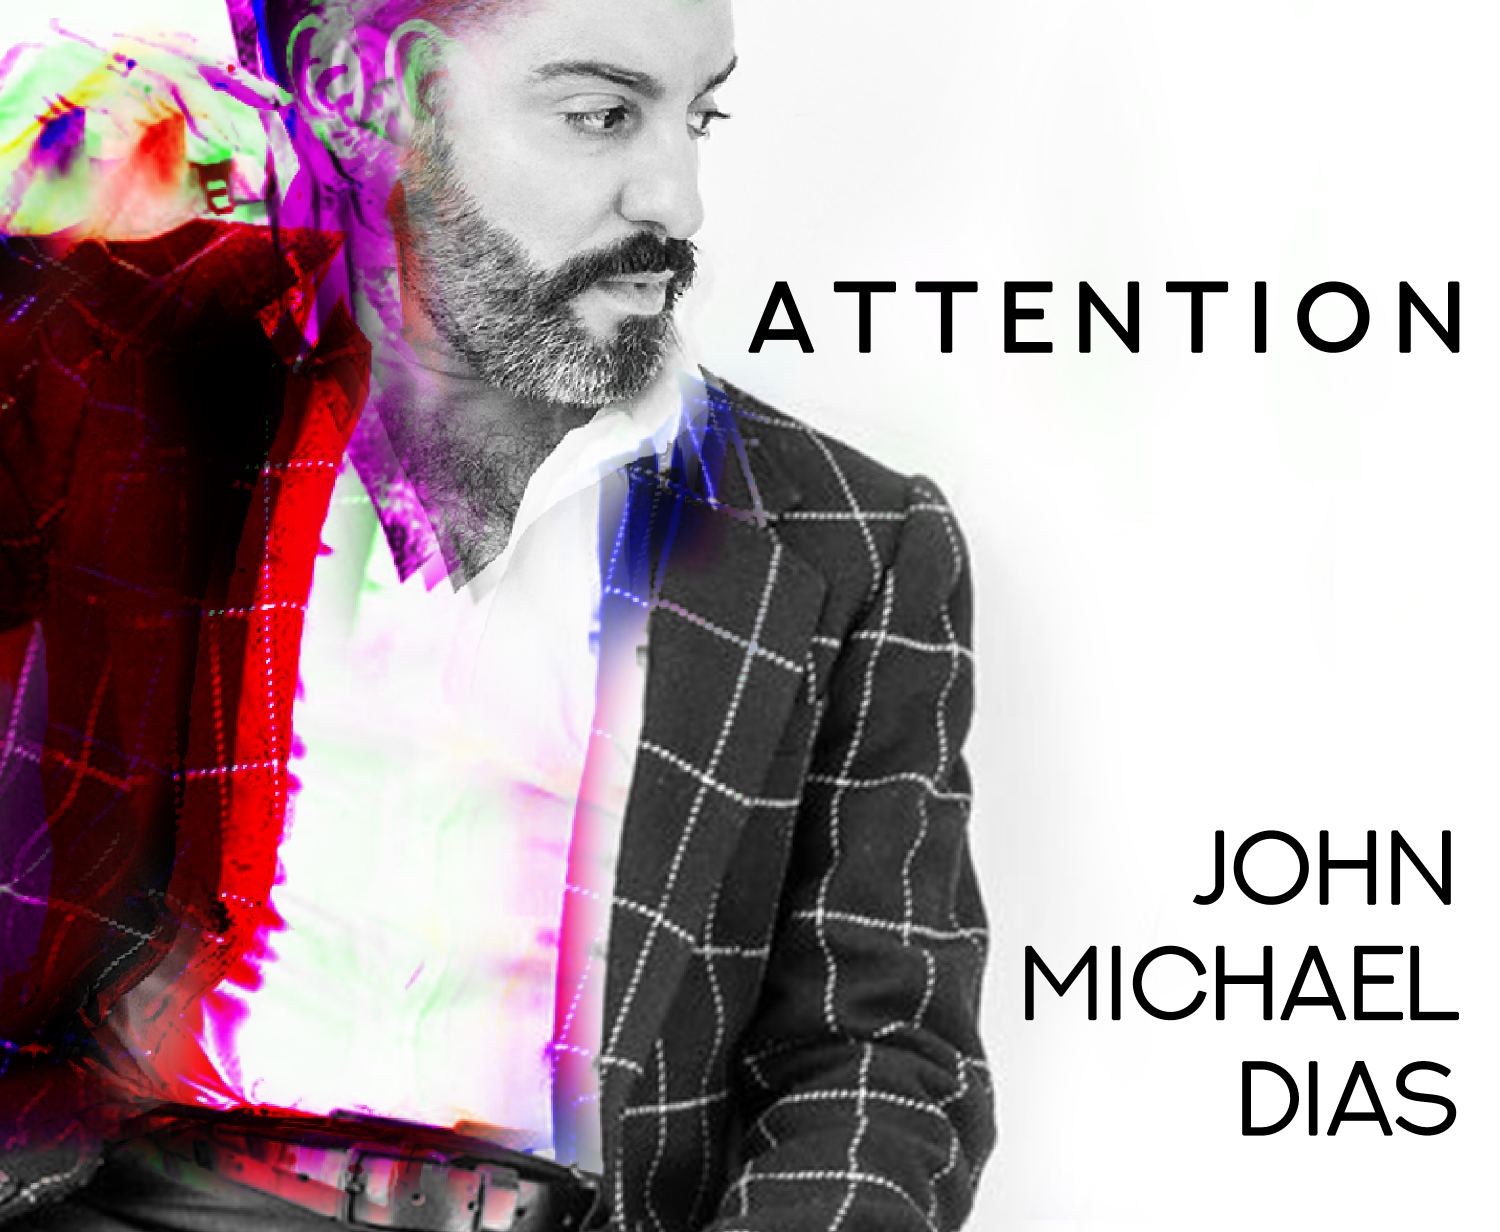 John Michael Dias - Attention